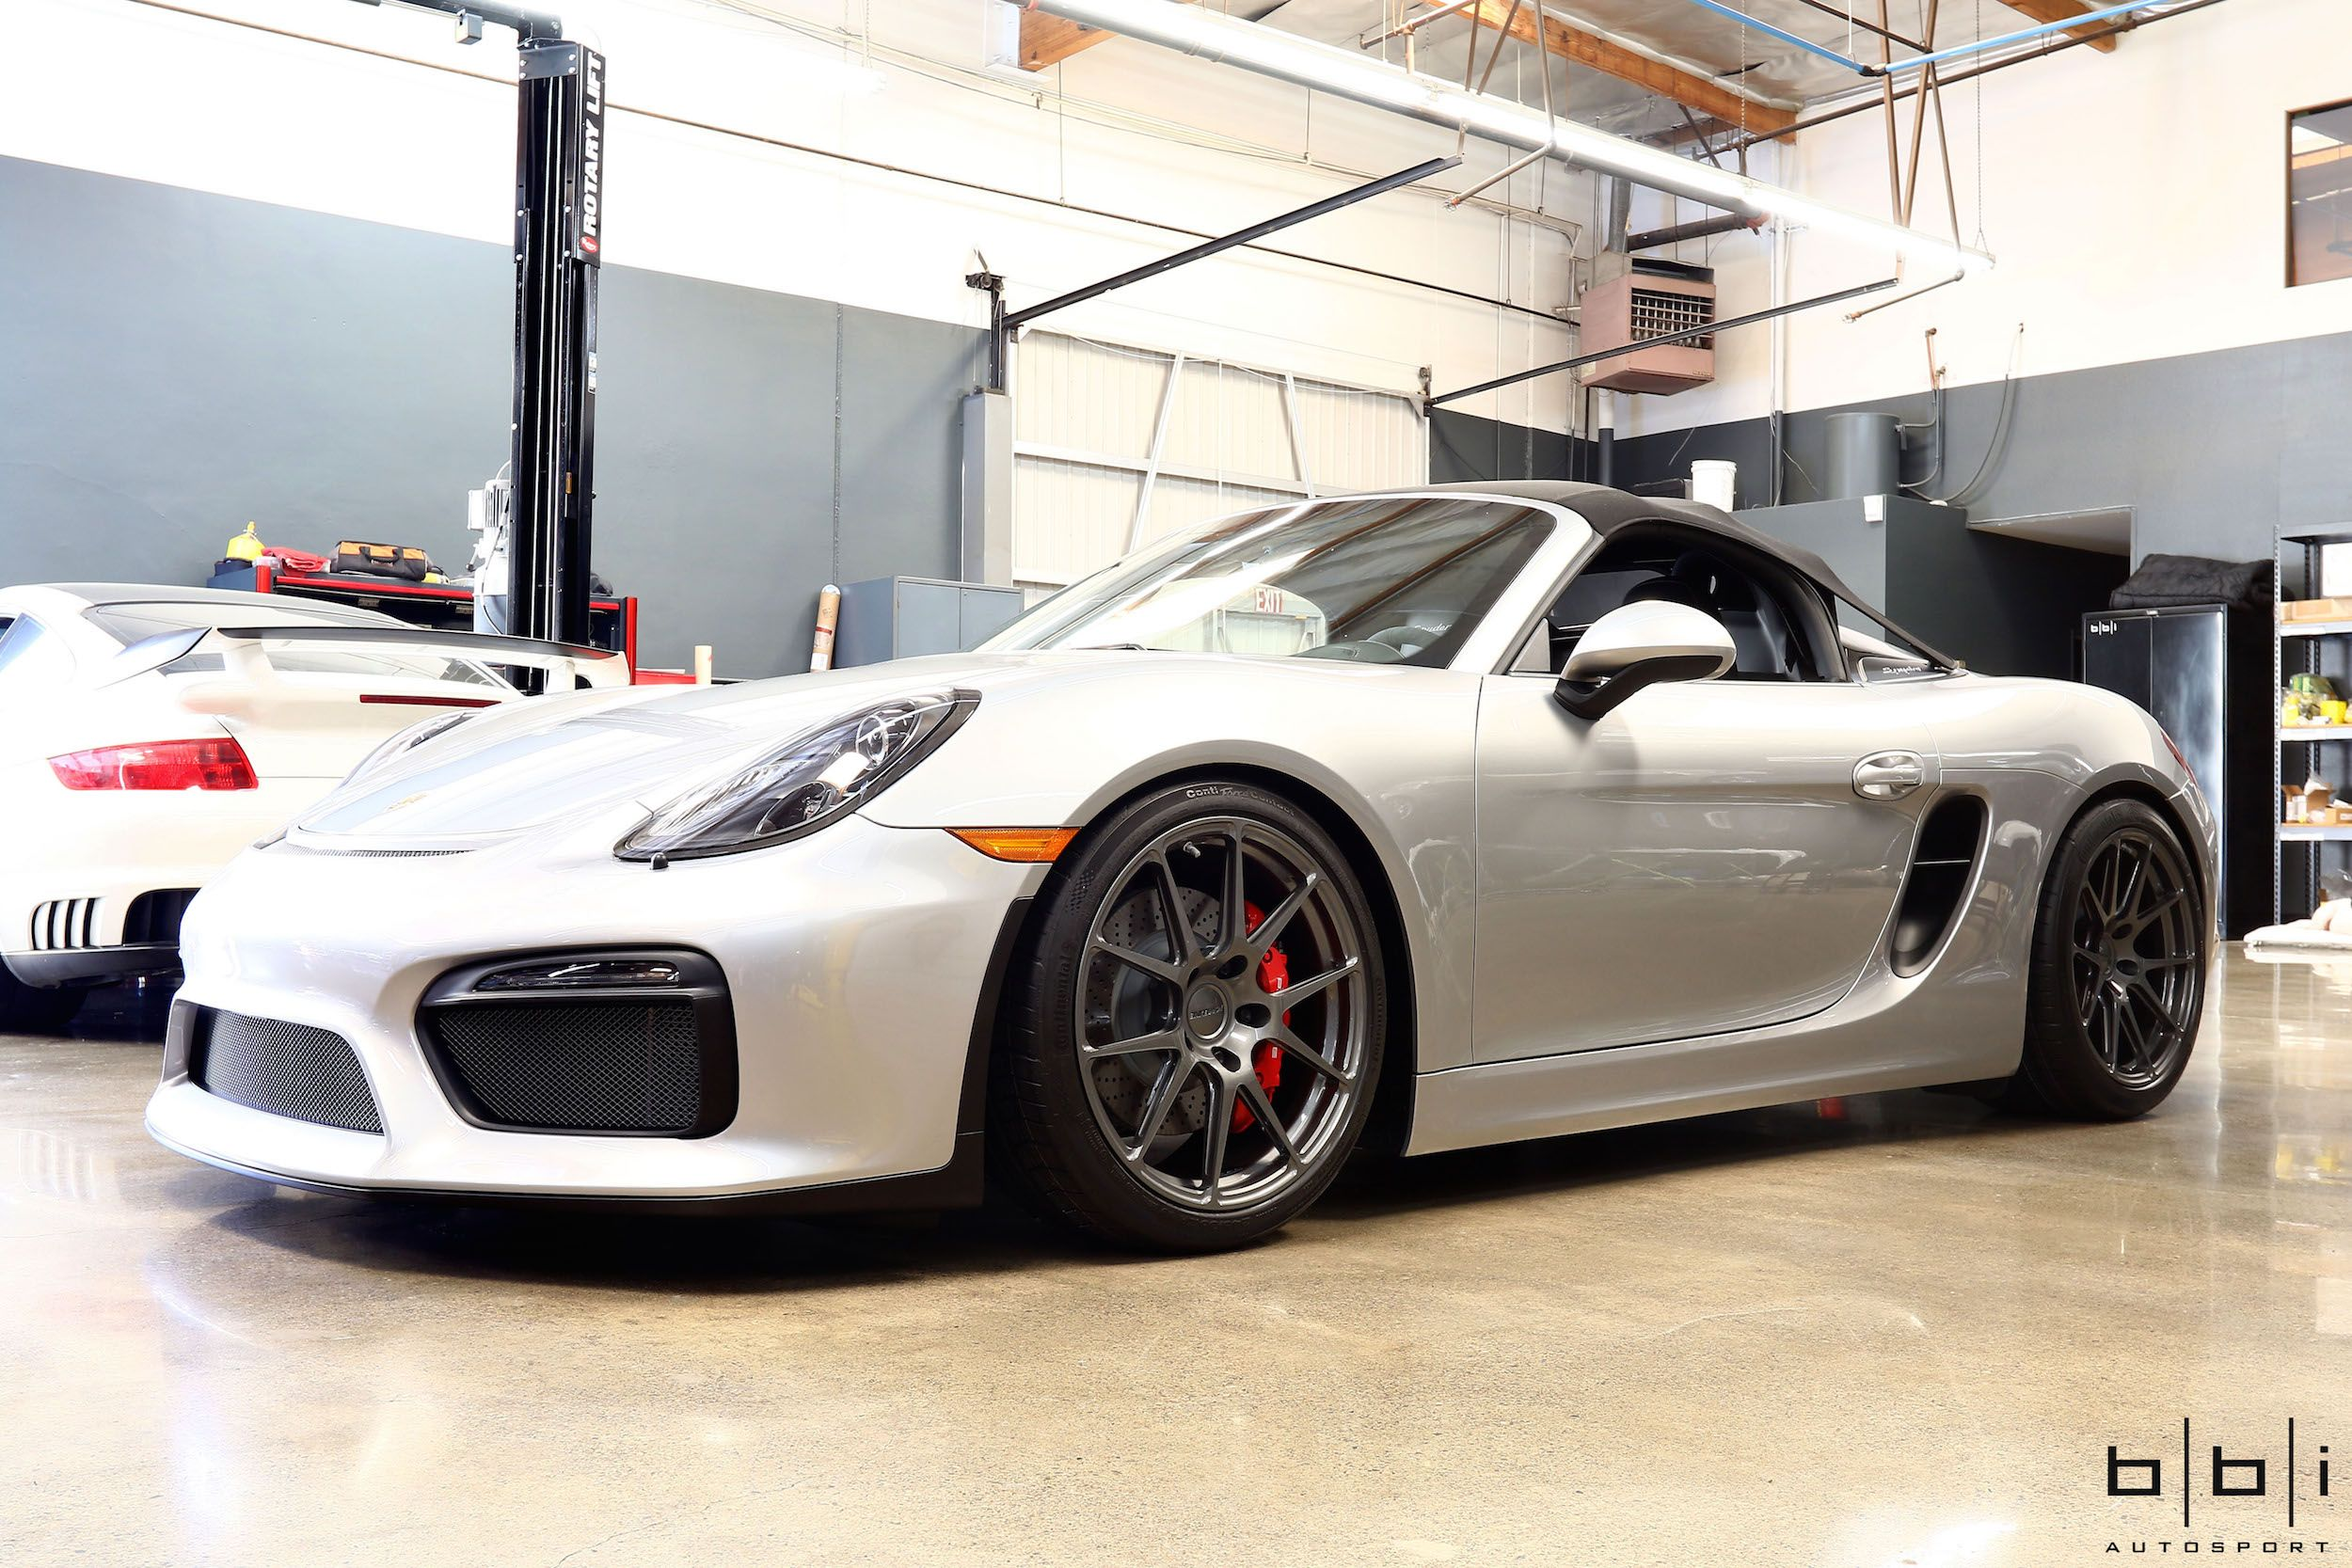 The team at bbi autosport upgraded this 2016 porsche boxster spyder with their 405hp streetcup stage